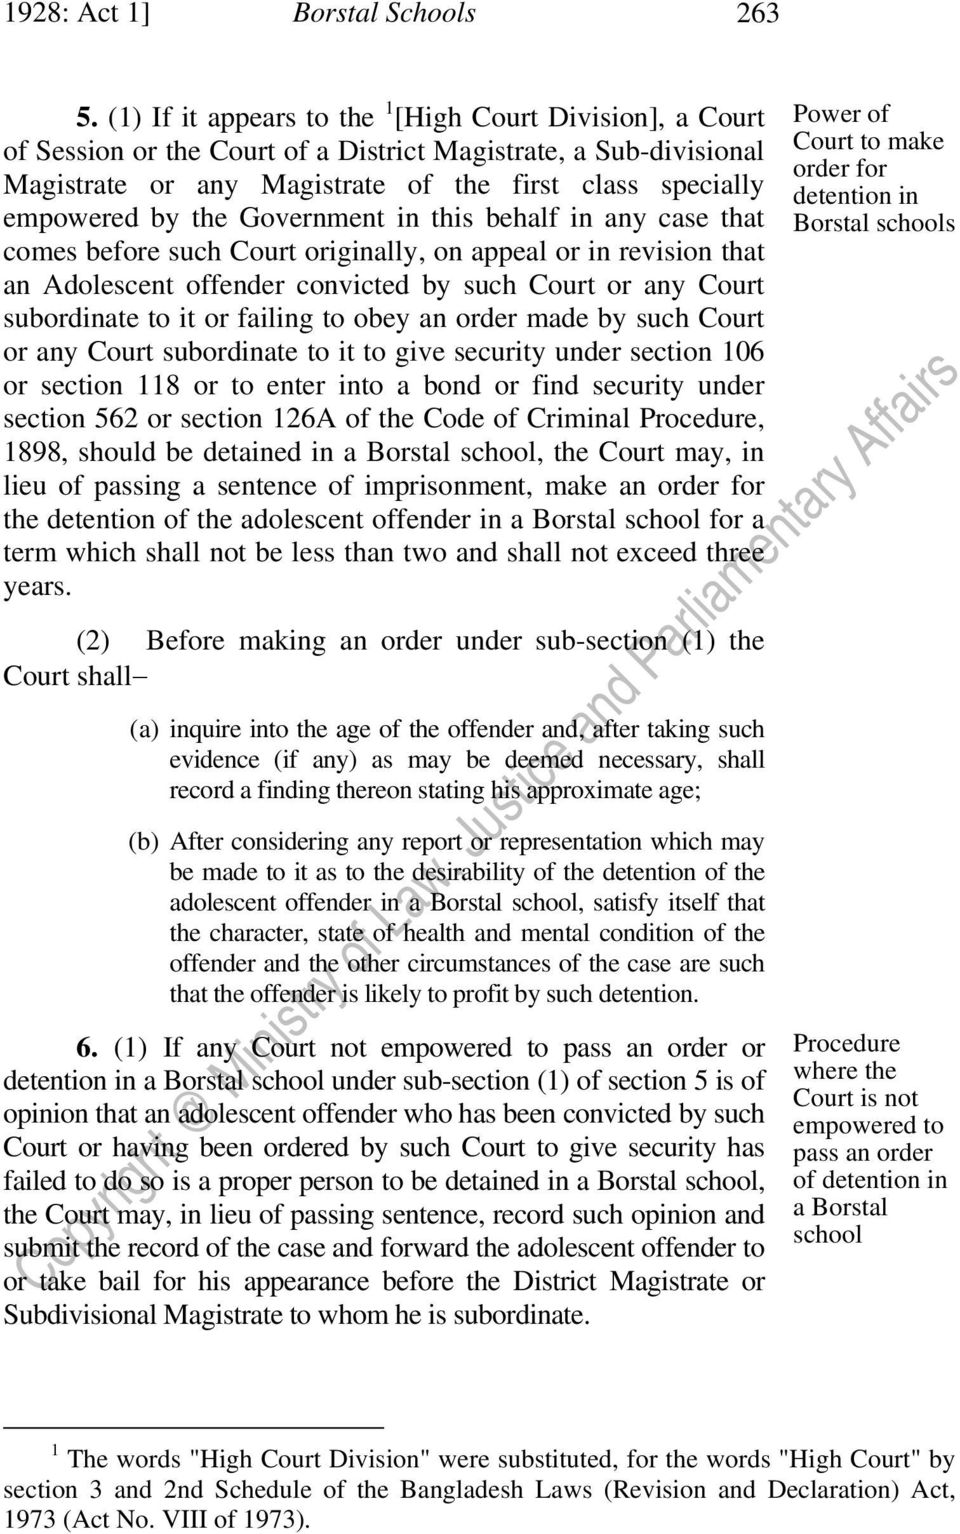 Government in this behalf in any case that comes before such Court originally, on appeal or in revision that an Adolescent offender convicted by such Court or any Court subordinate to it or failing